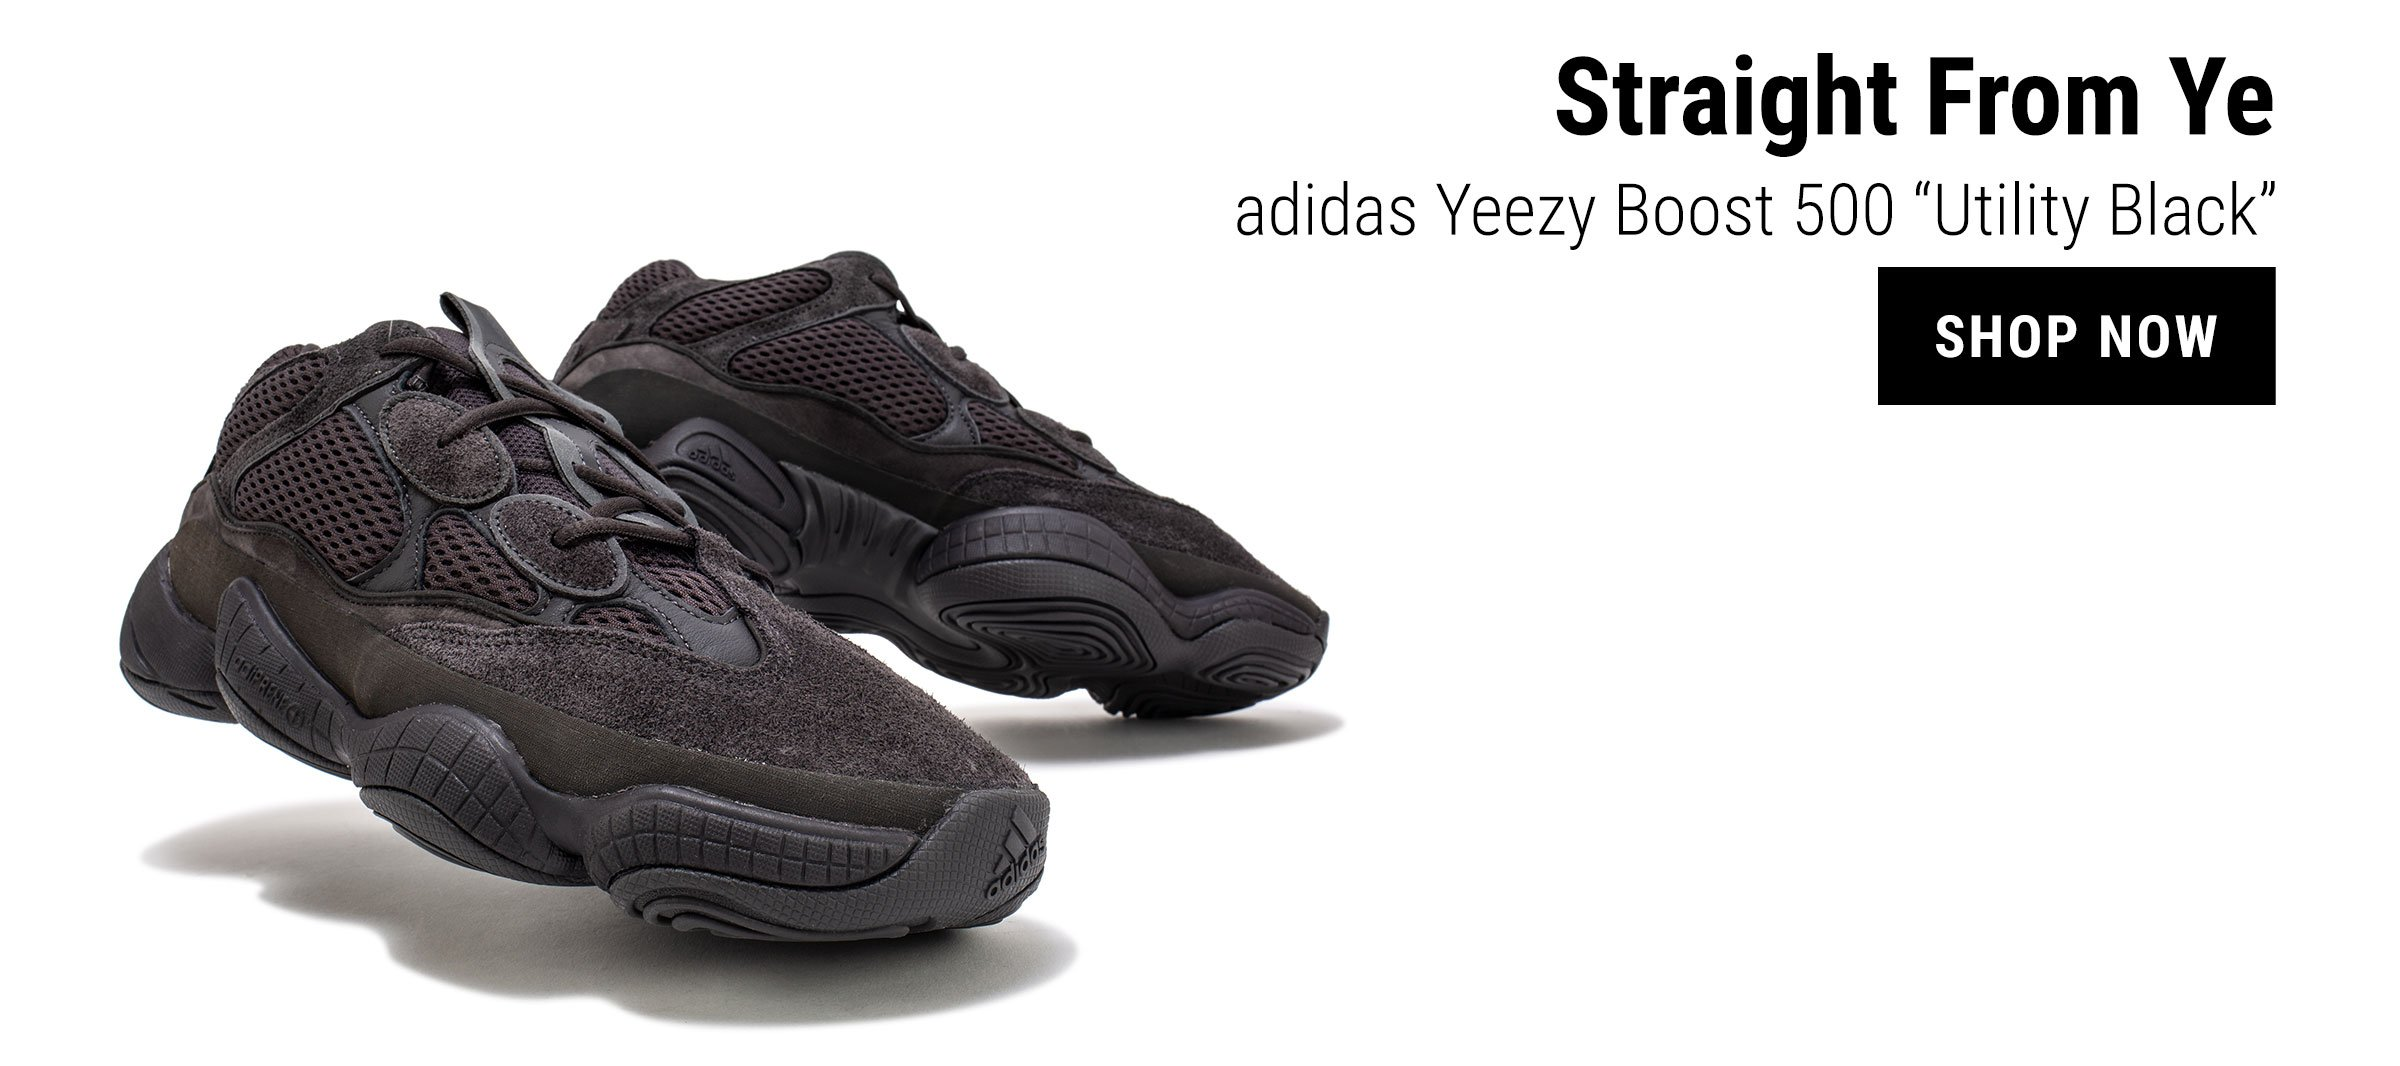 Straight From Ye  the latest from adidas x Yeezy feat. the Yeezy ... 4dcd99793